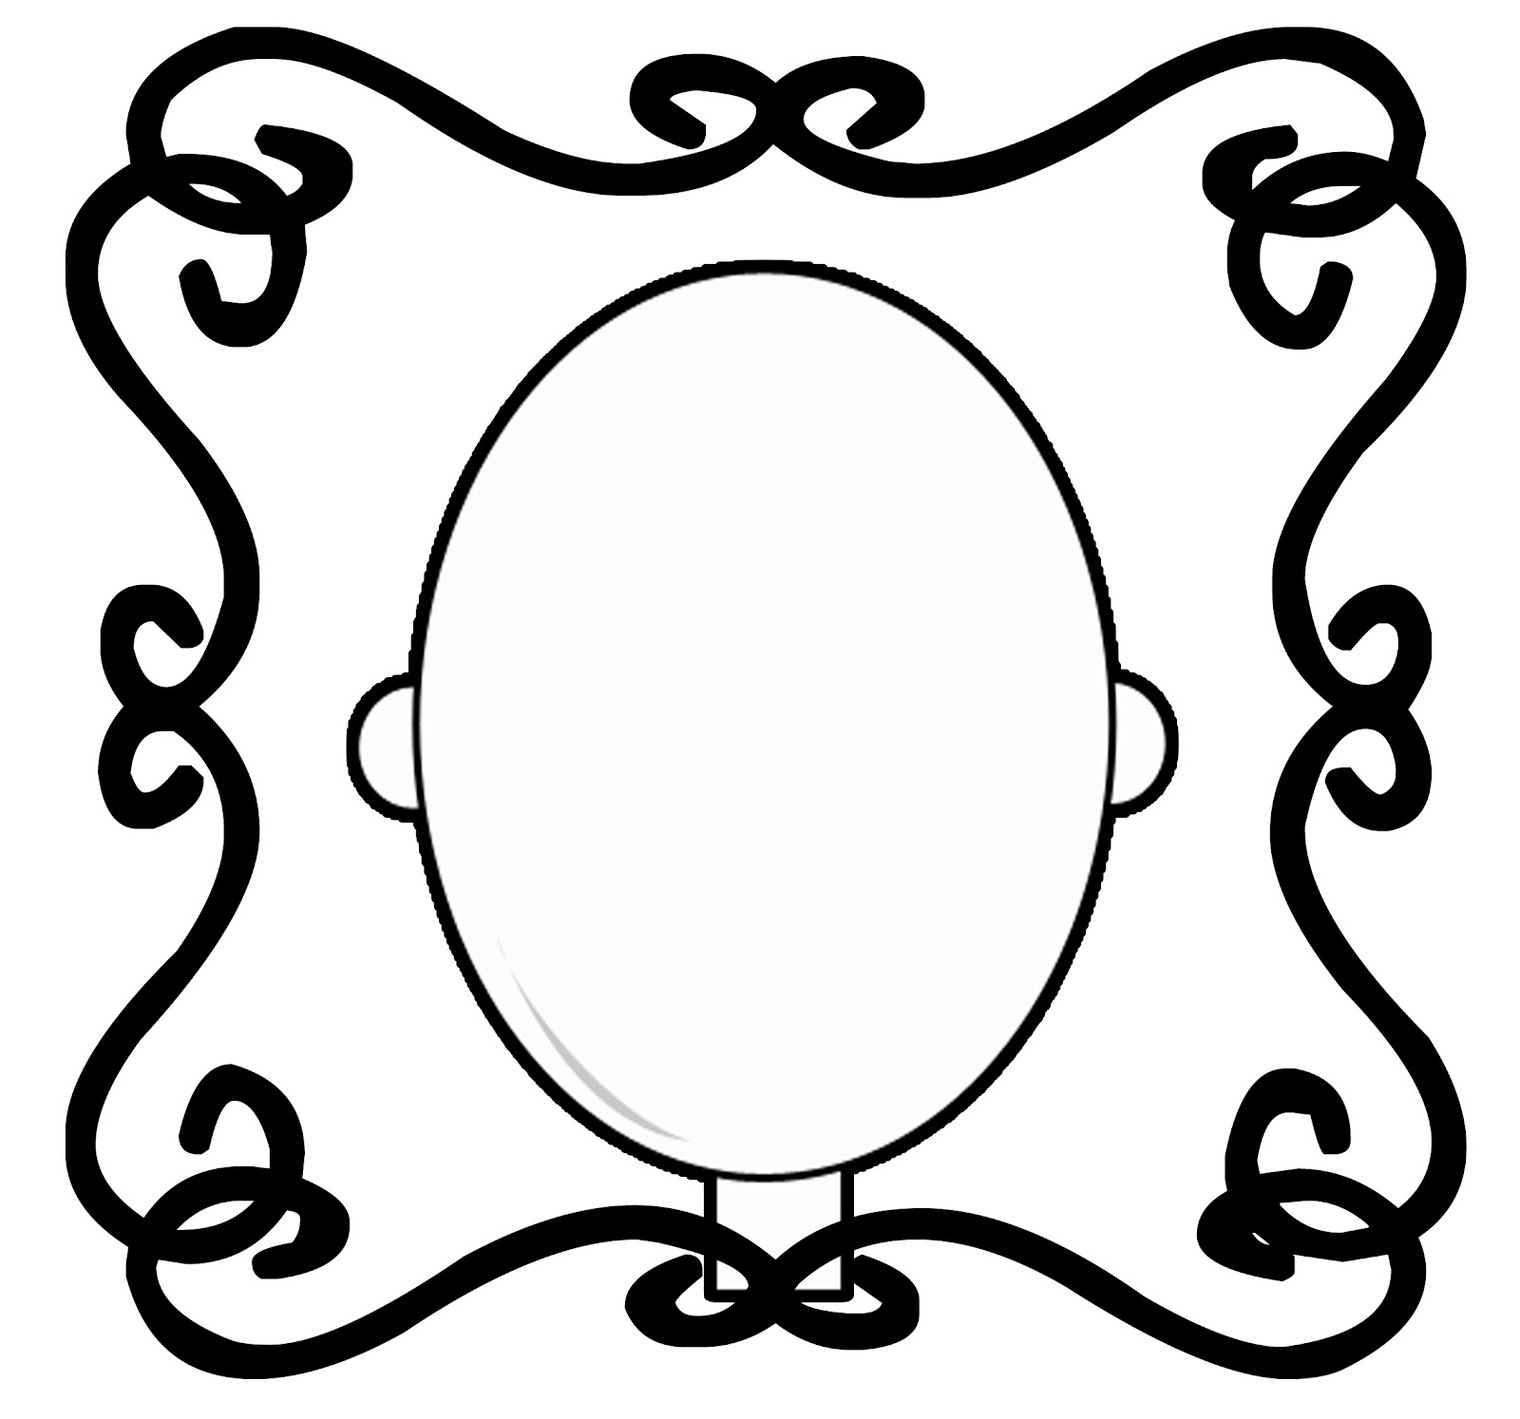 Doc Blank Face Template Printable Blank Face Coloring Page – Face Template Printable